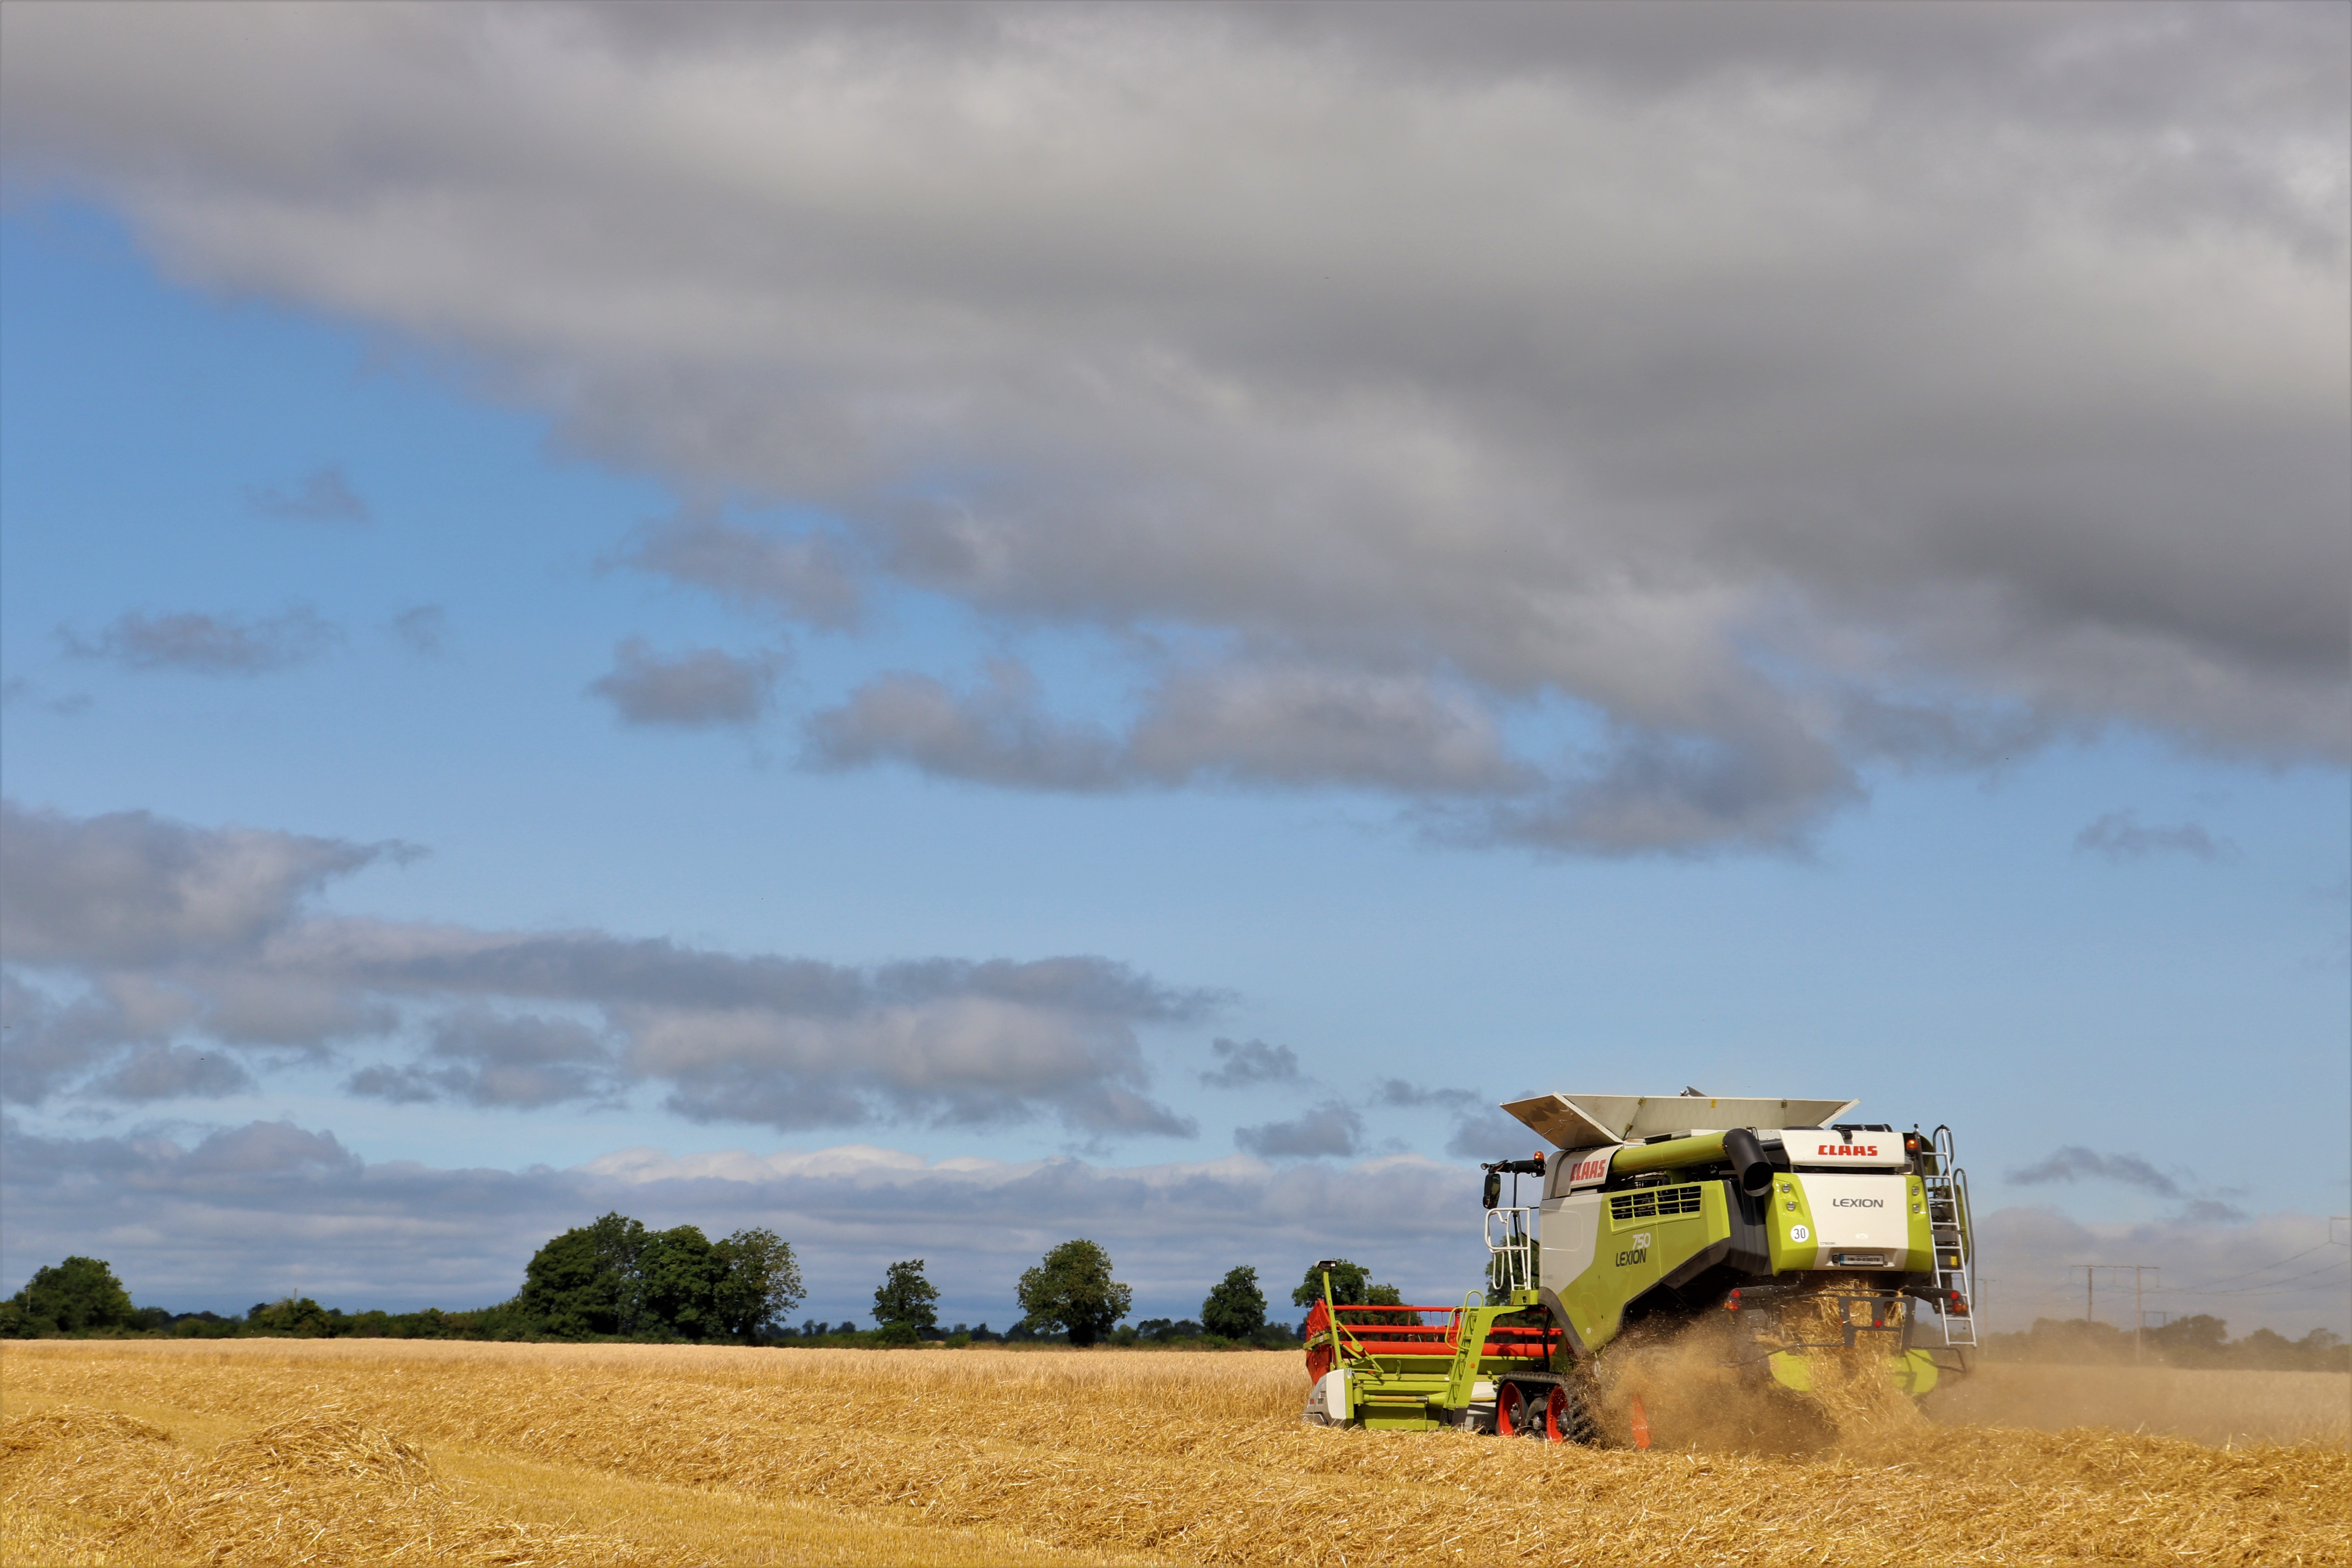 Harvest pics: Have you entered yet?